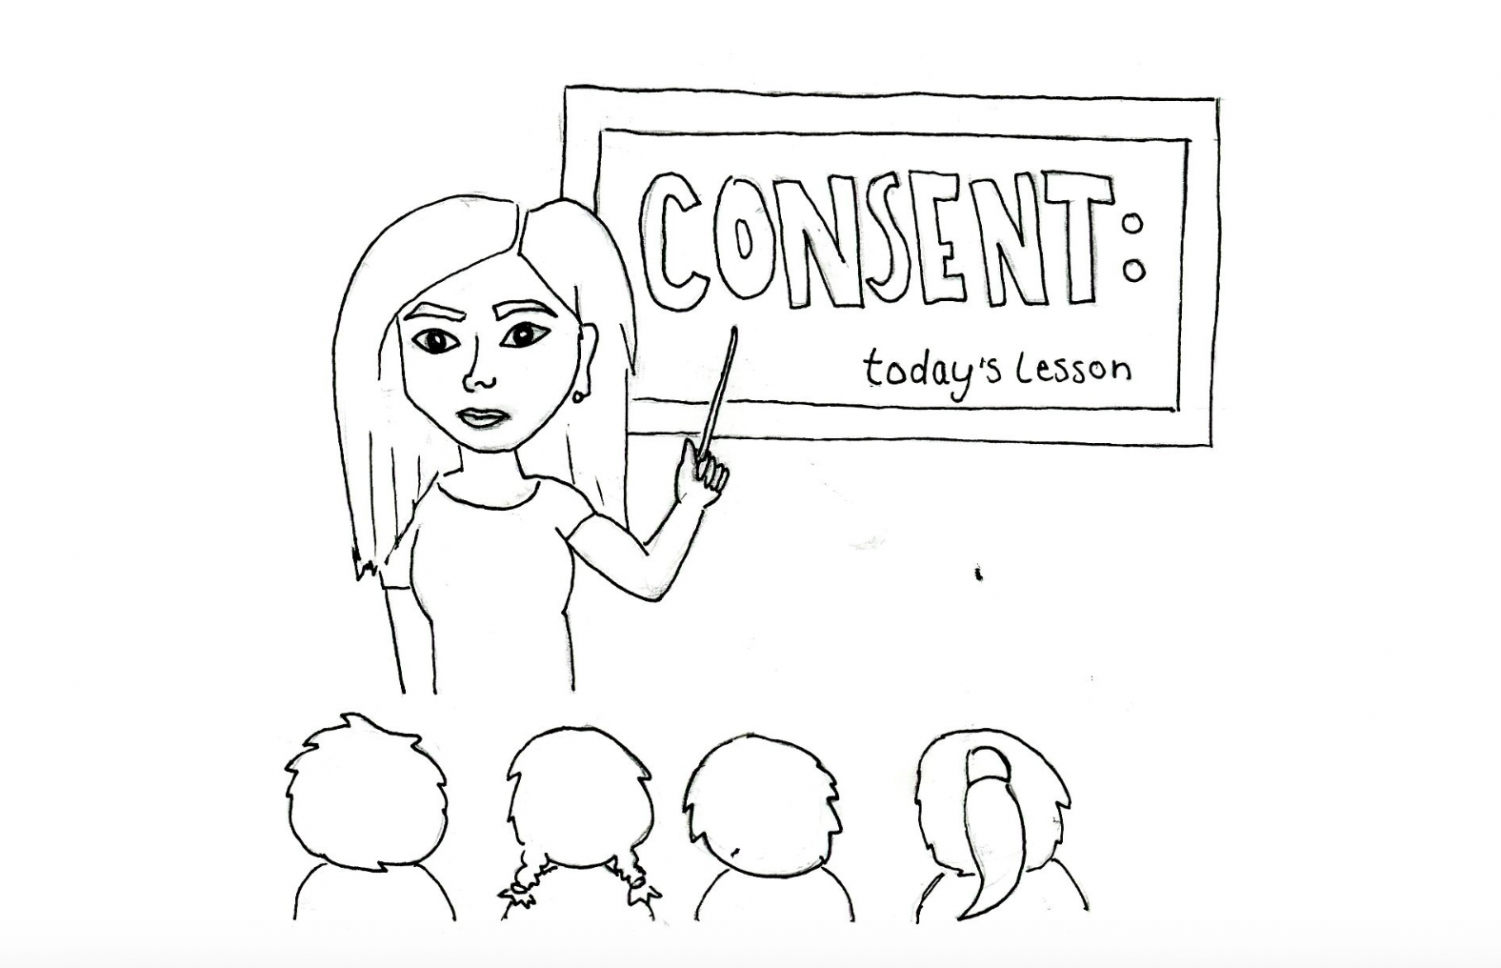 Online Editor Natalie Sadek argues that consent should be taught in the health and fitness curriculum.